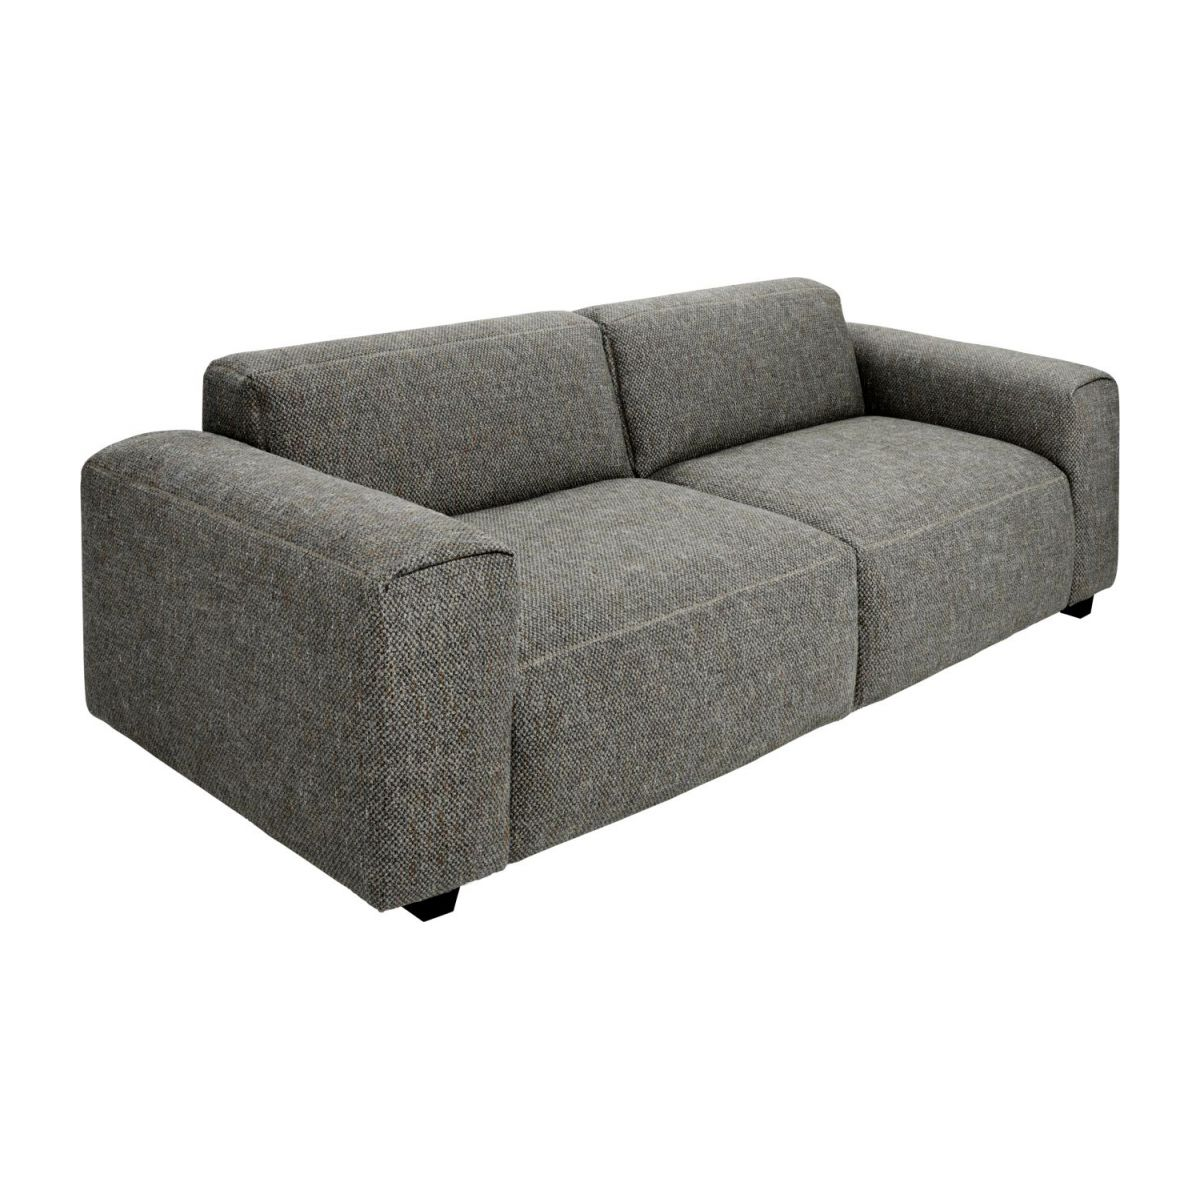 2 seater sofa in Bellagio fabric, night black n°1